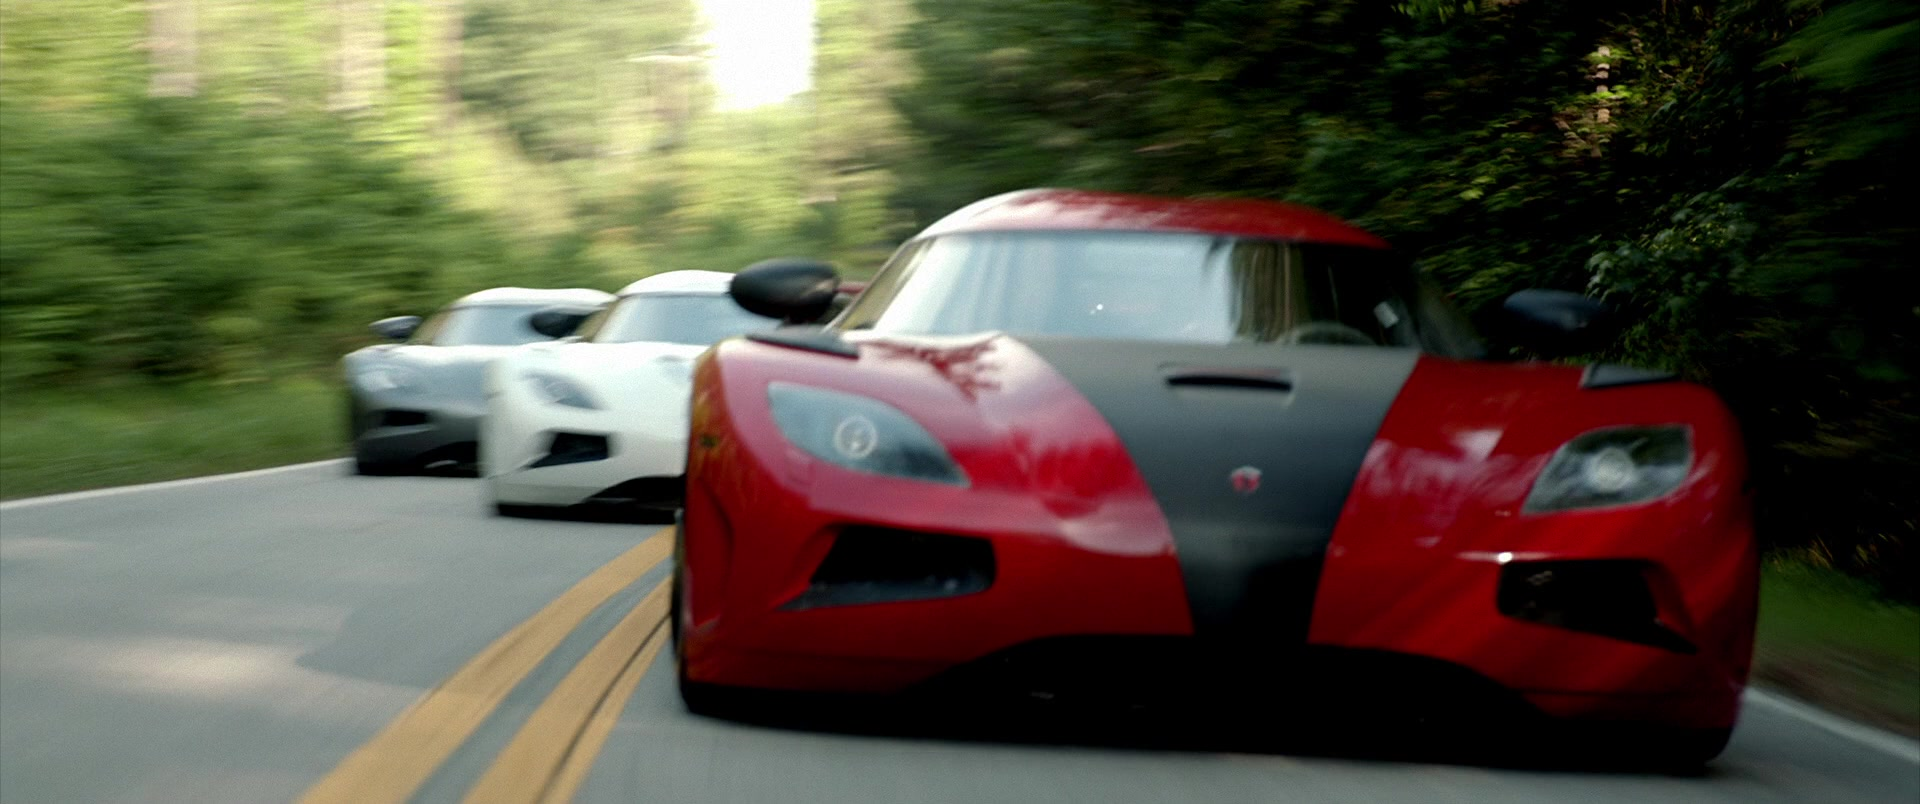 Koenigsegg Agera High Performance Sports Cars In Need For Speed 2014